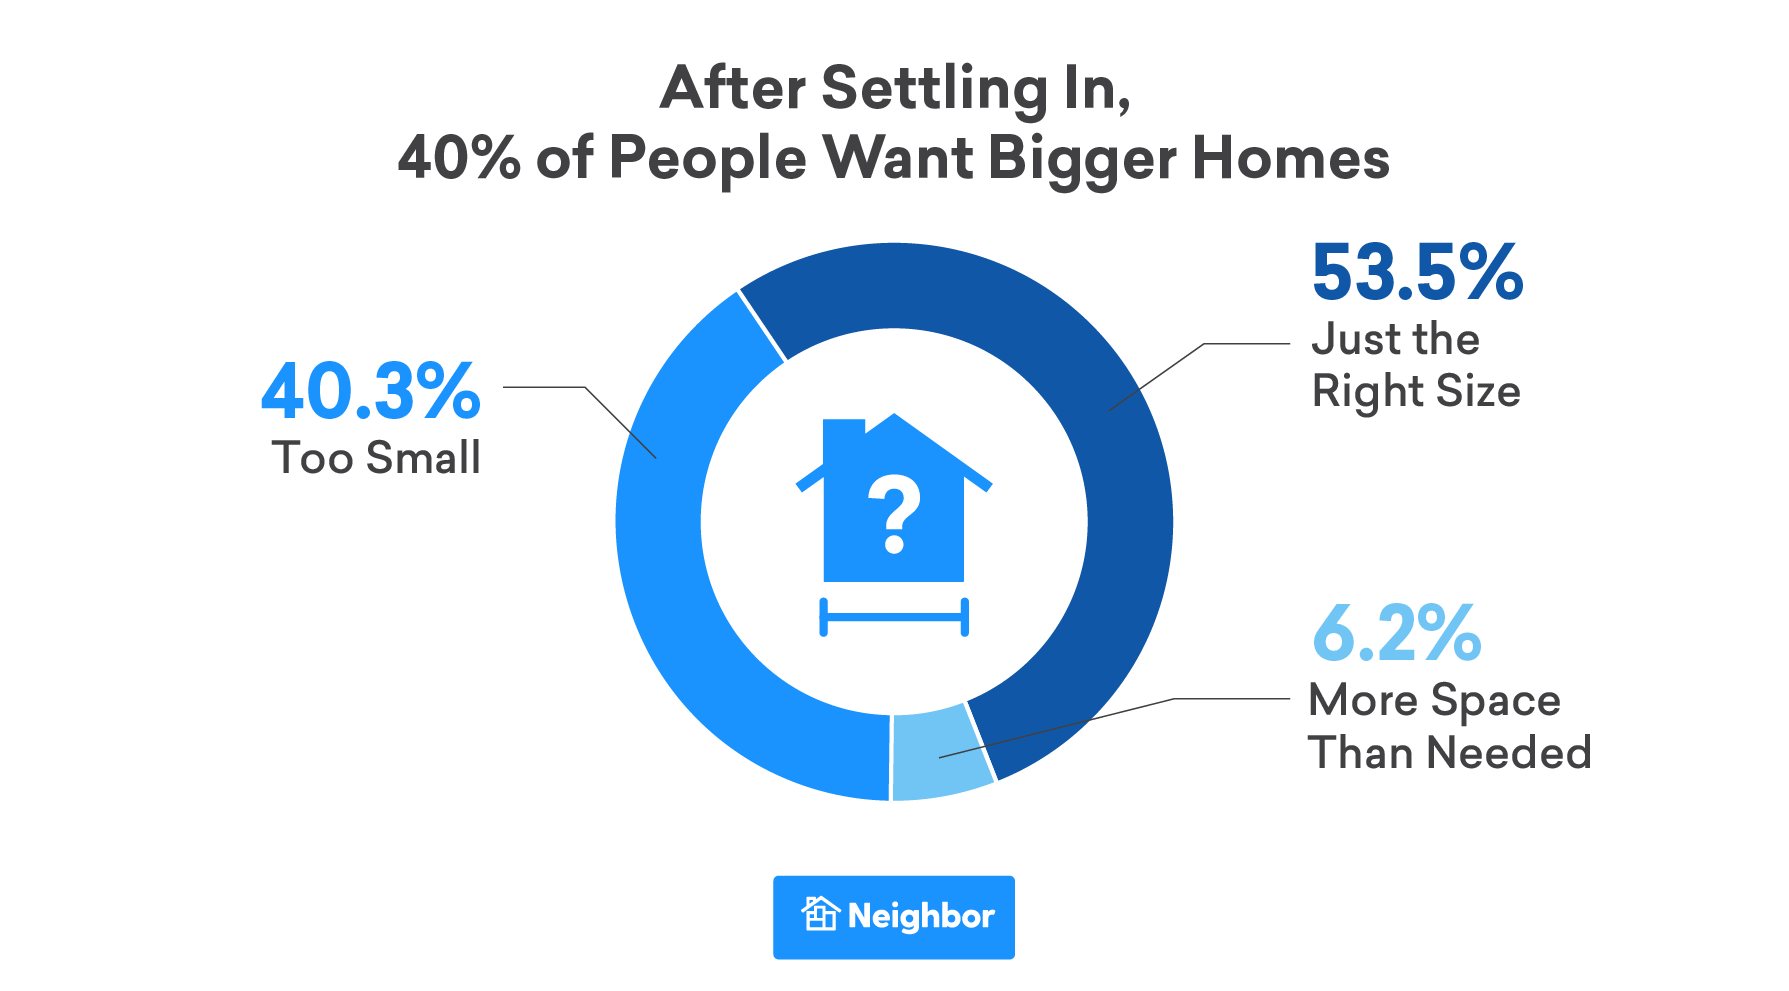 Half of People Want Bigger Homes